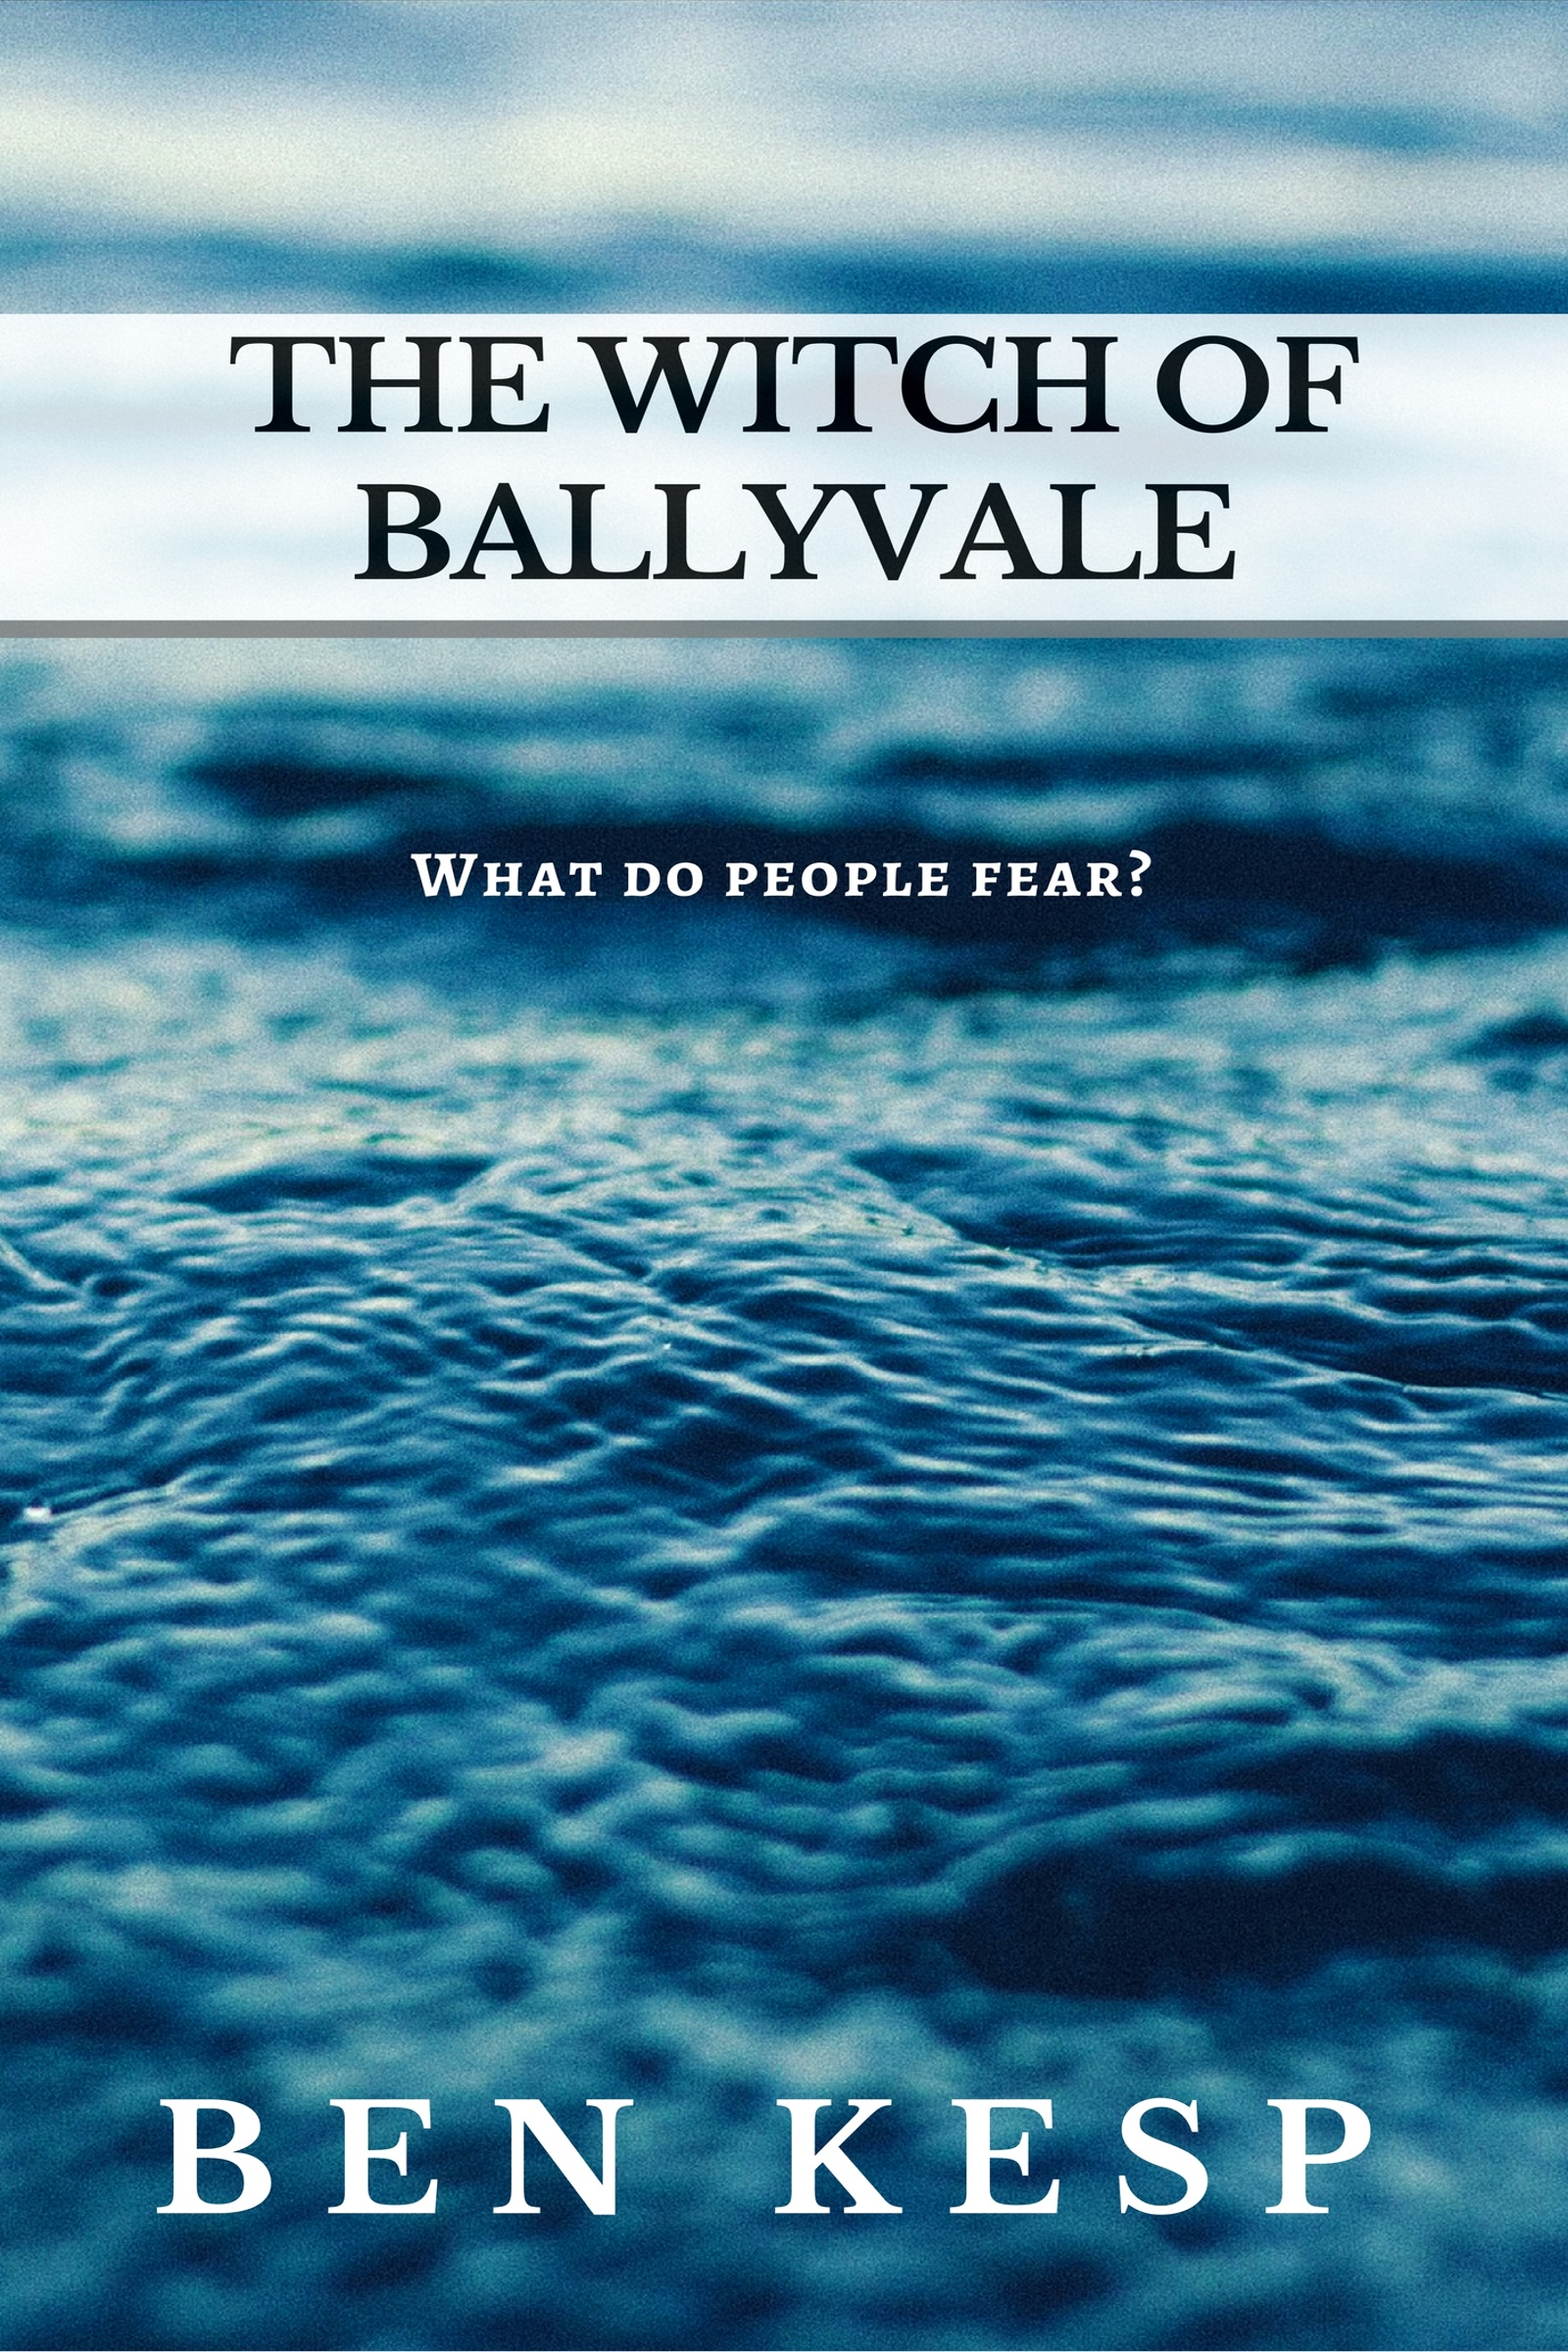 The Witch of Ballyvale